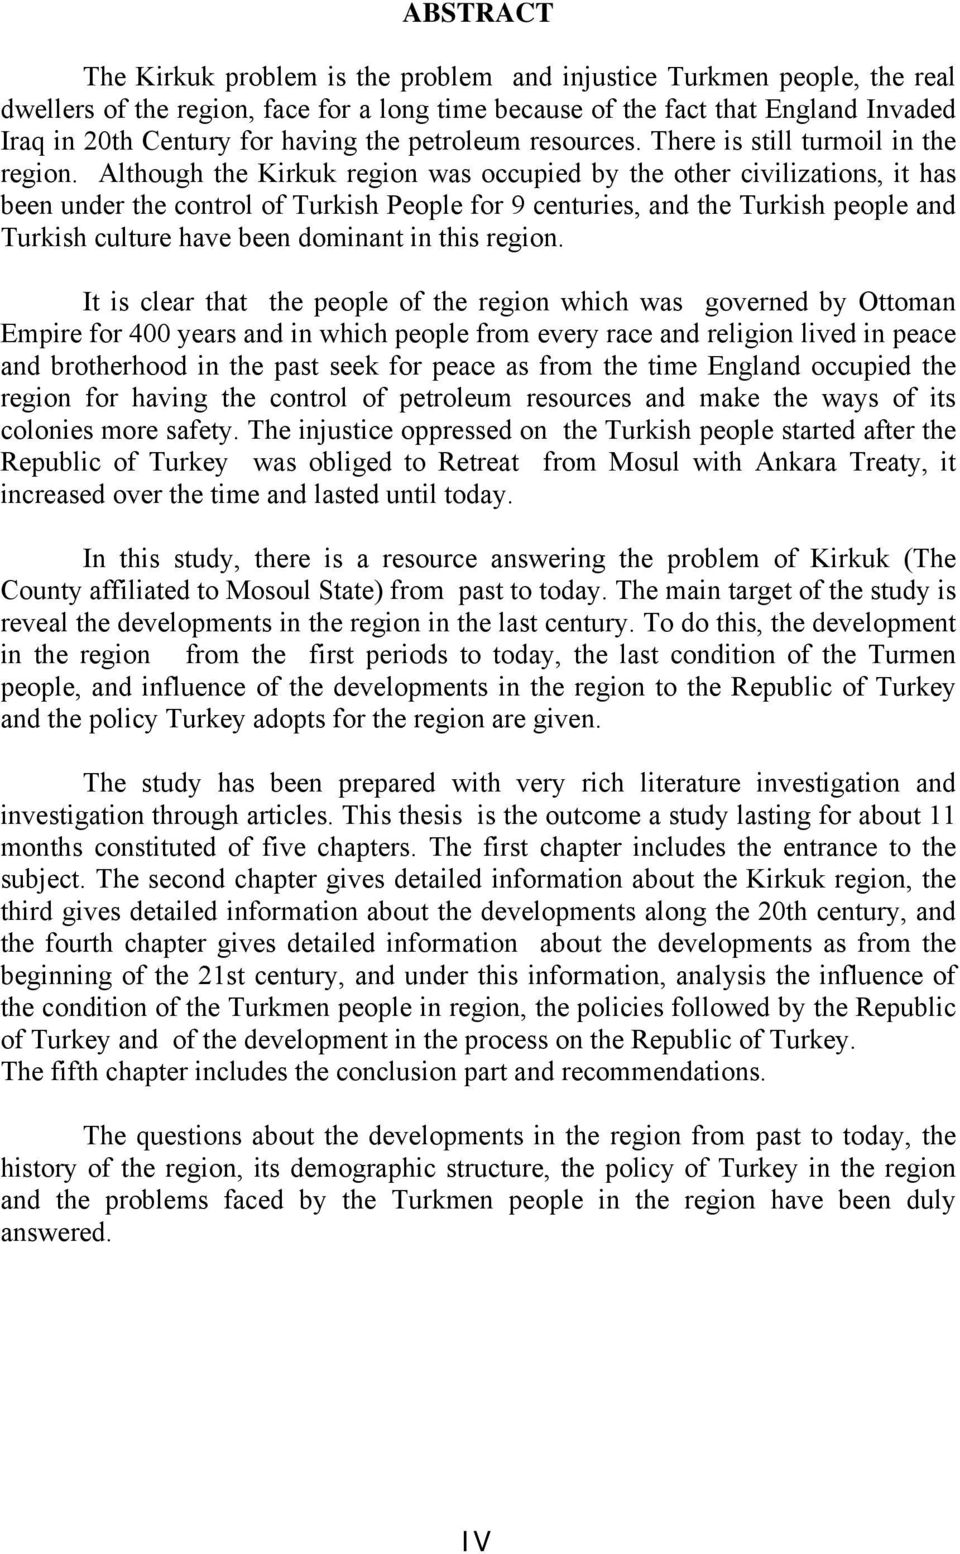 Although the Kirkuk region was occupied by the other civilizations, it has been under the control of Turkish People for 9 centuries, and the Turkish people and Turkish culture have been dominant in